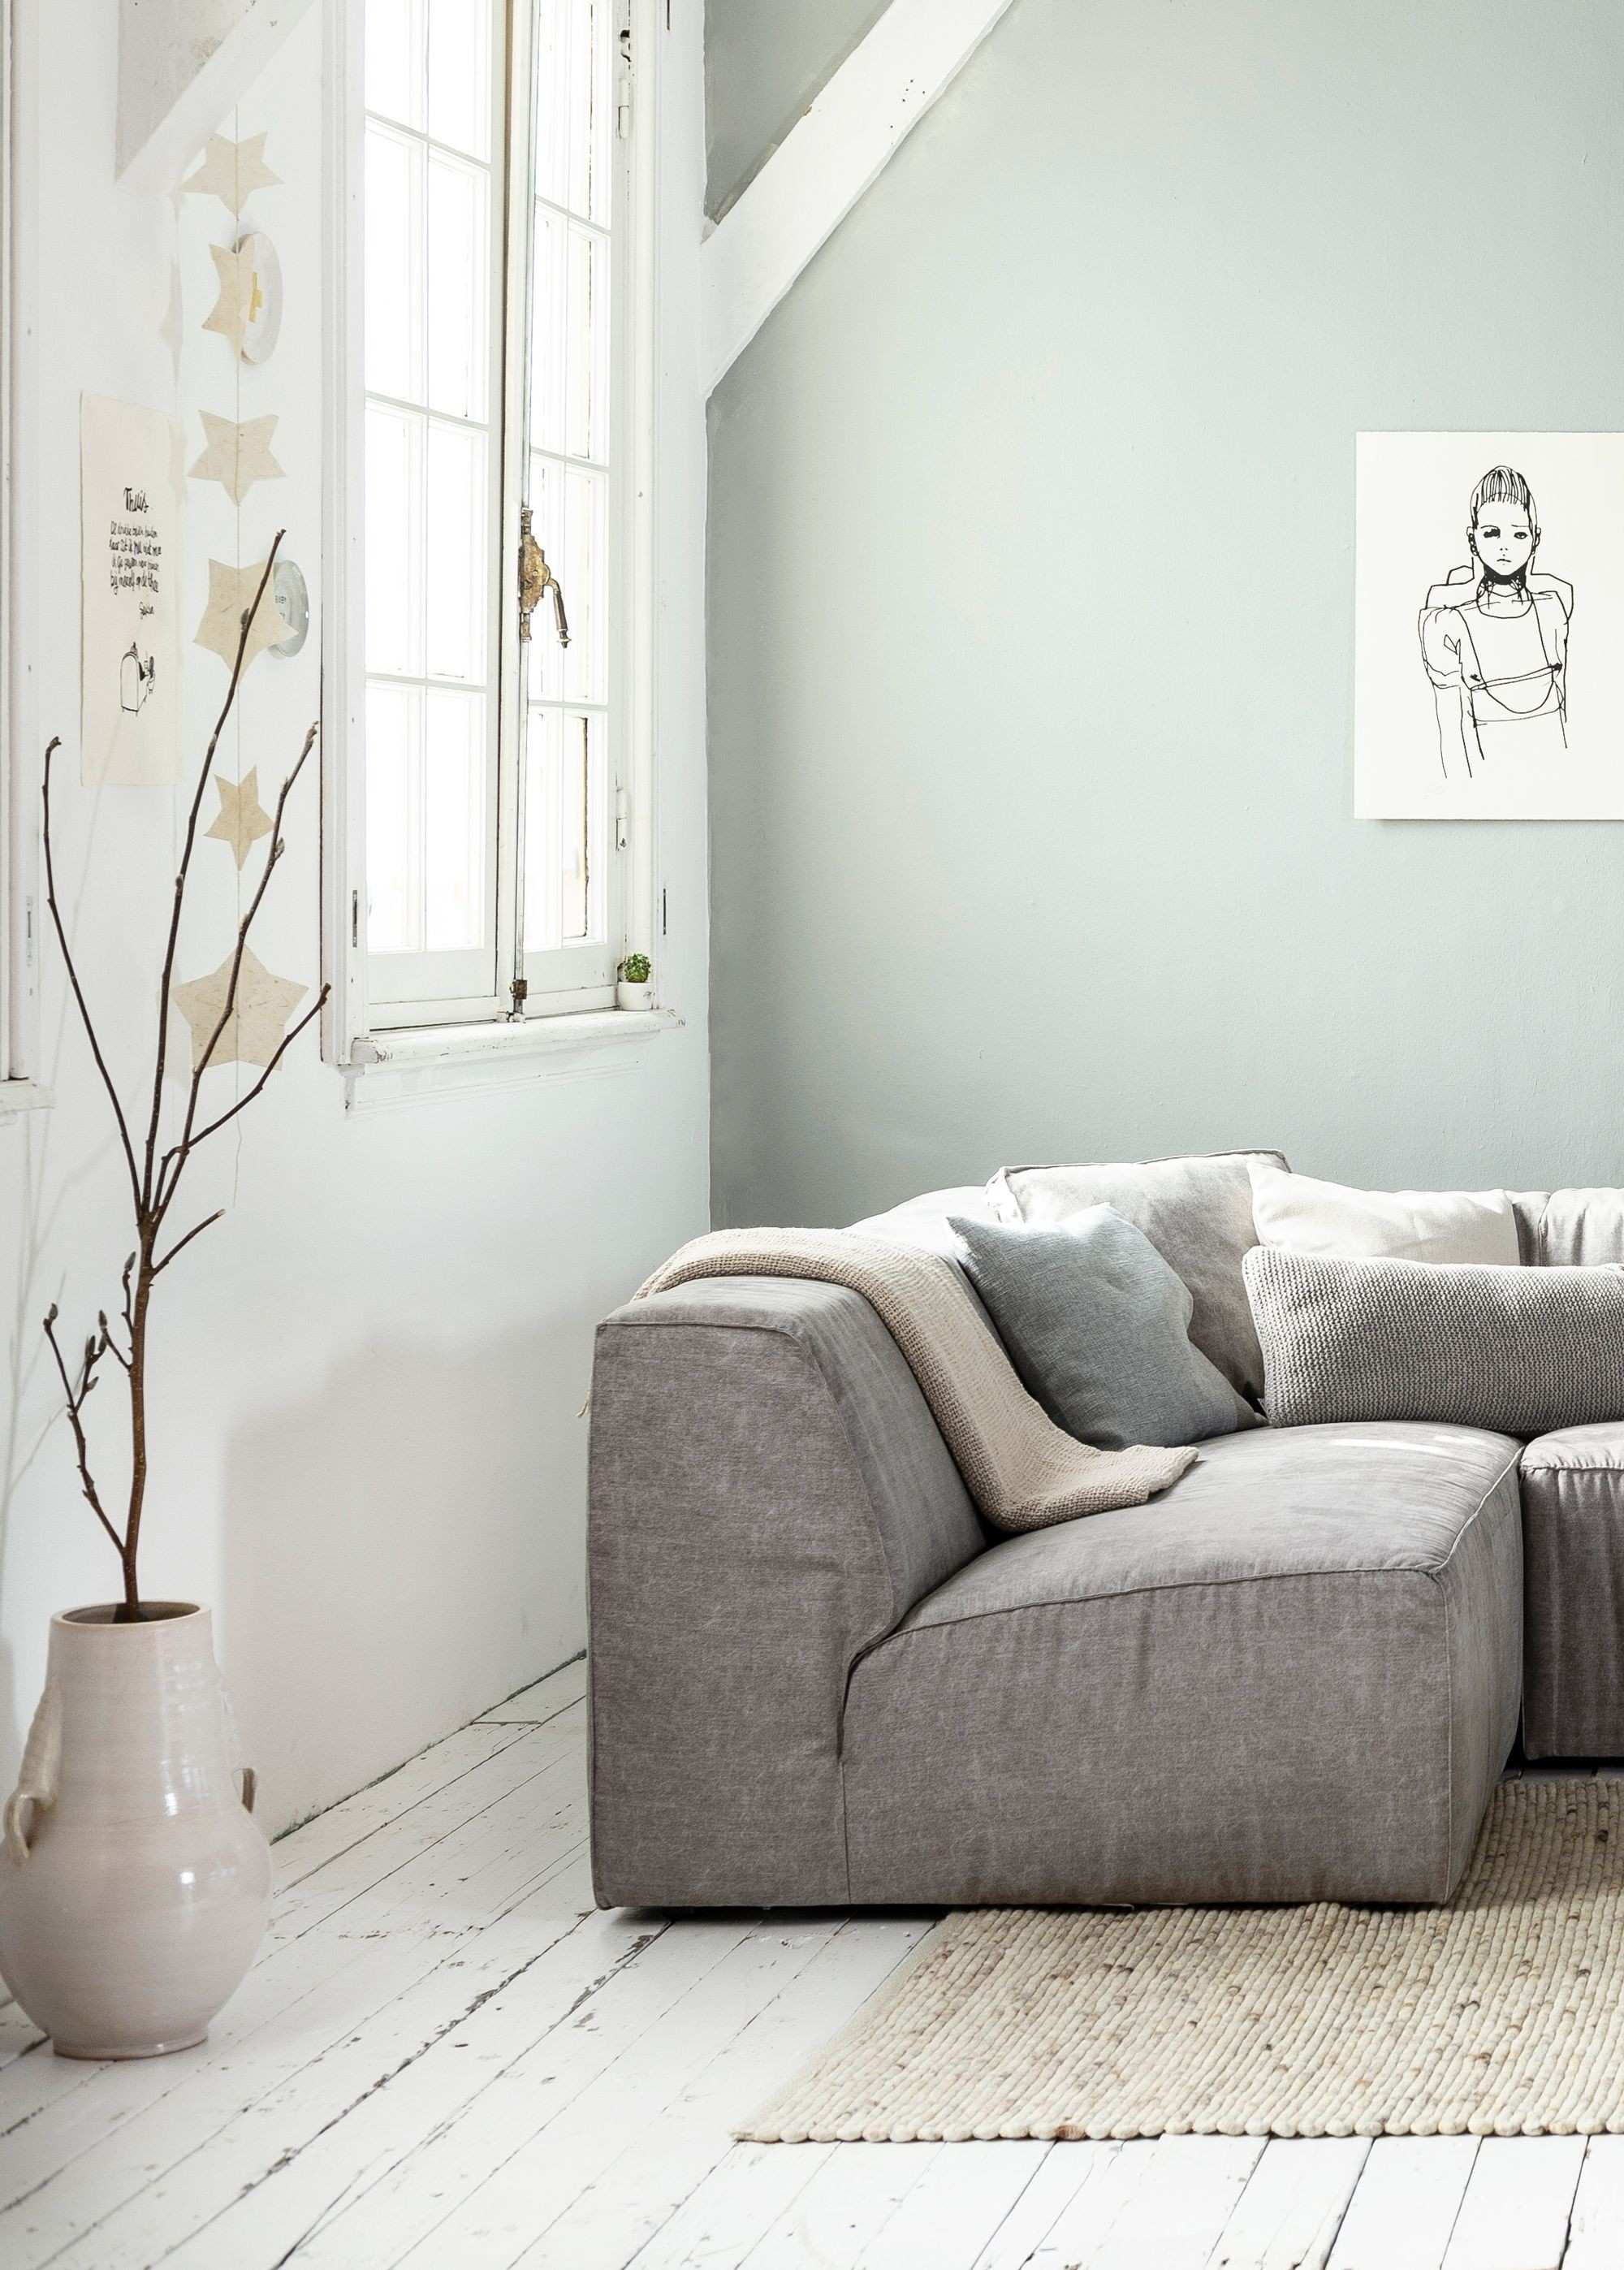 White grey and light interior living room with white wooden